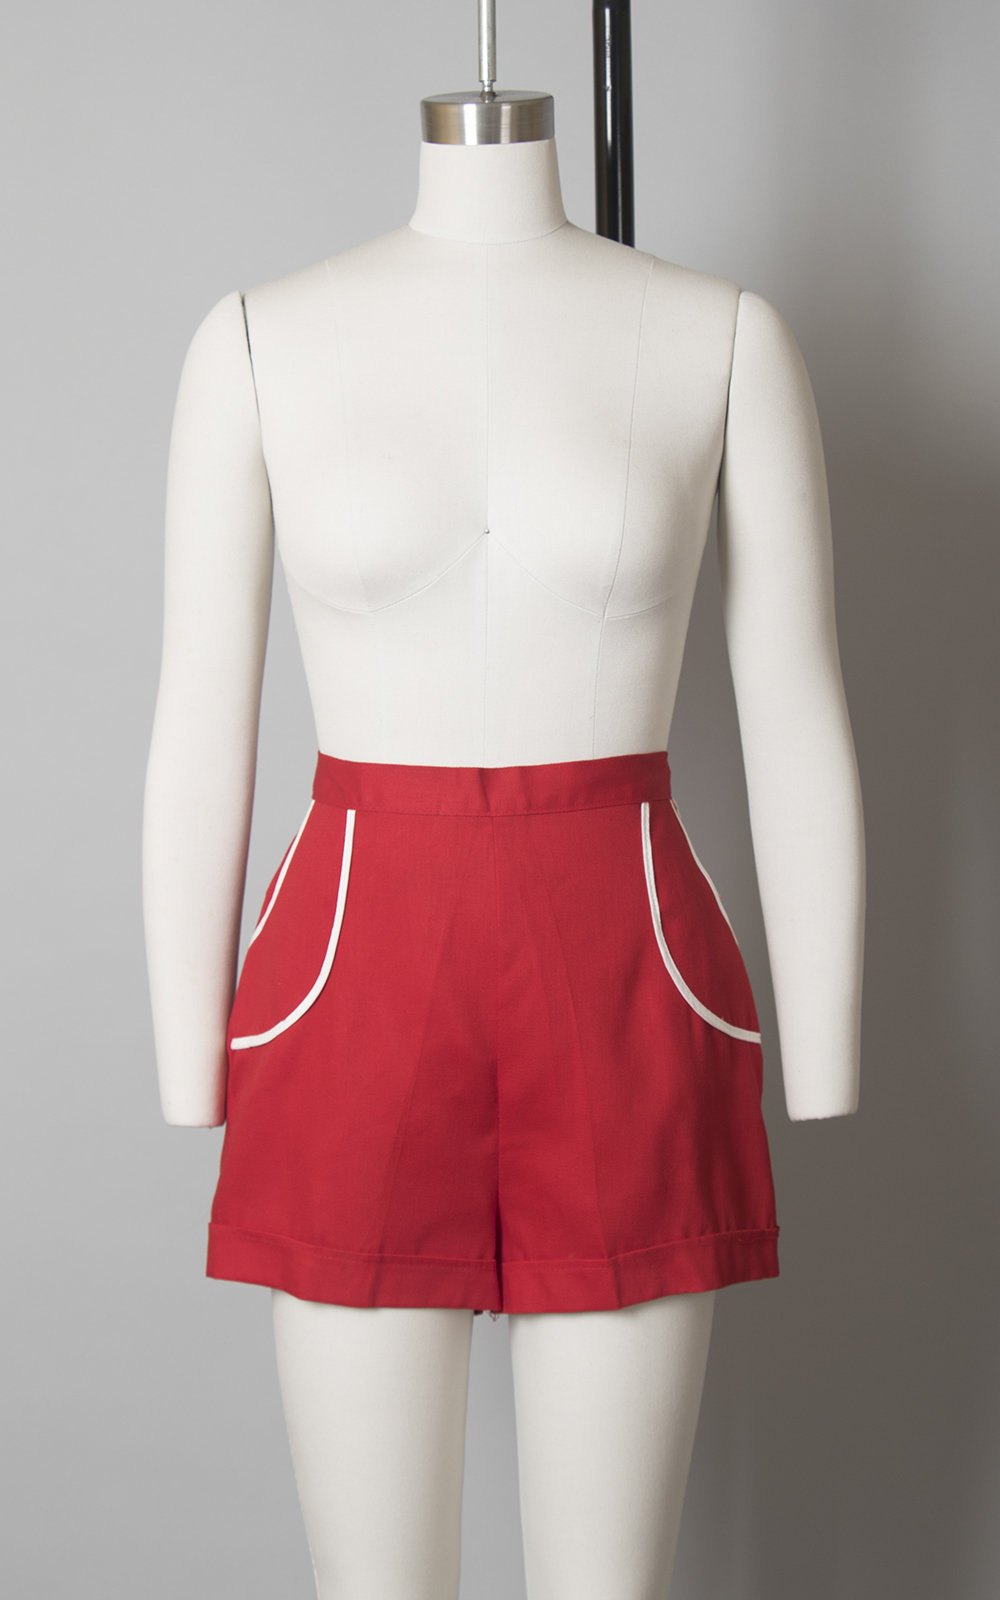 Vintage 1940s Shorts | 40s DEADSTOCK Red Cotton High Waisted Summer Sportswear Shorts w/ Pockets (small)